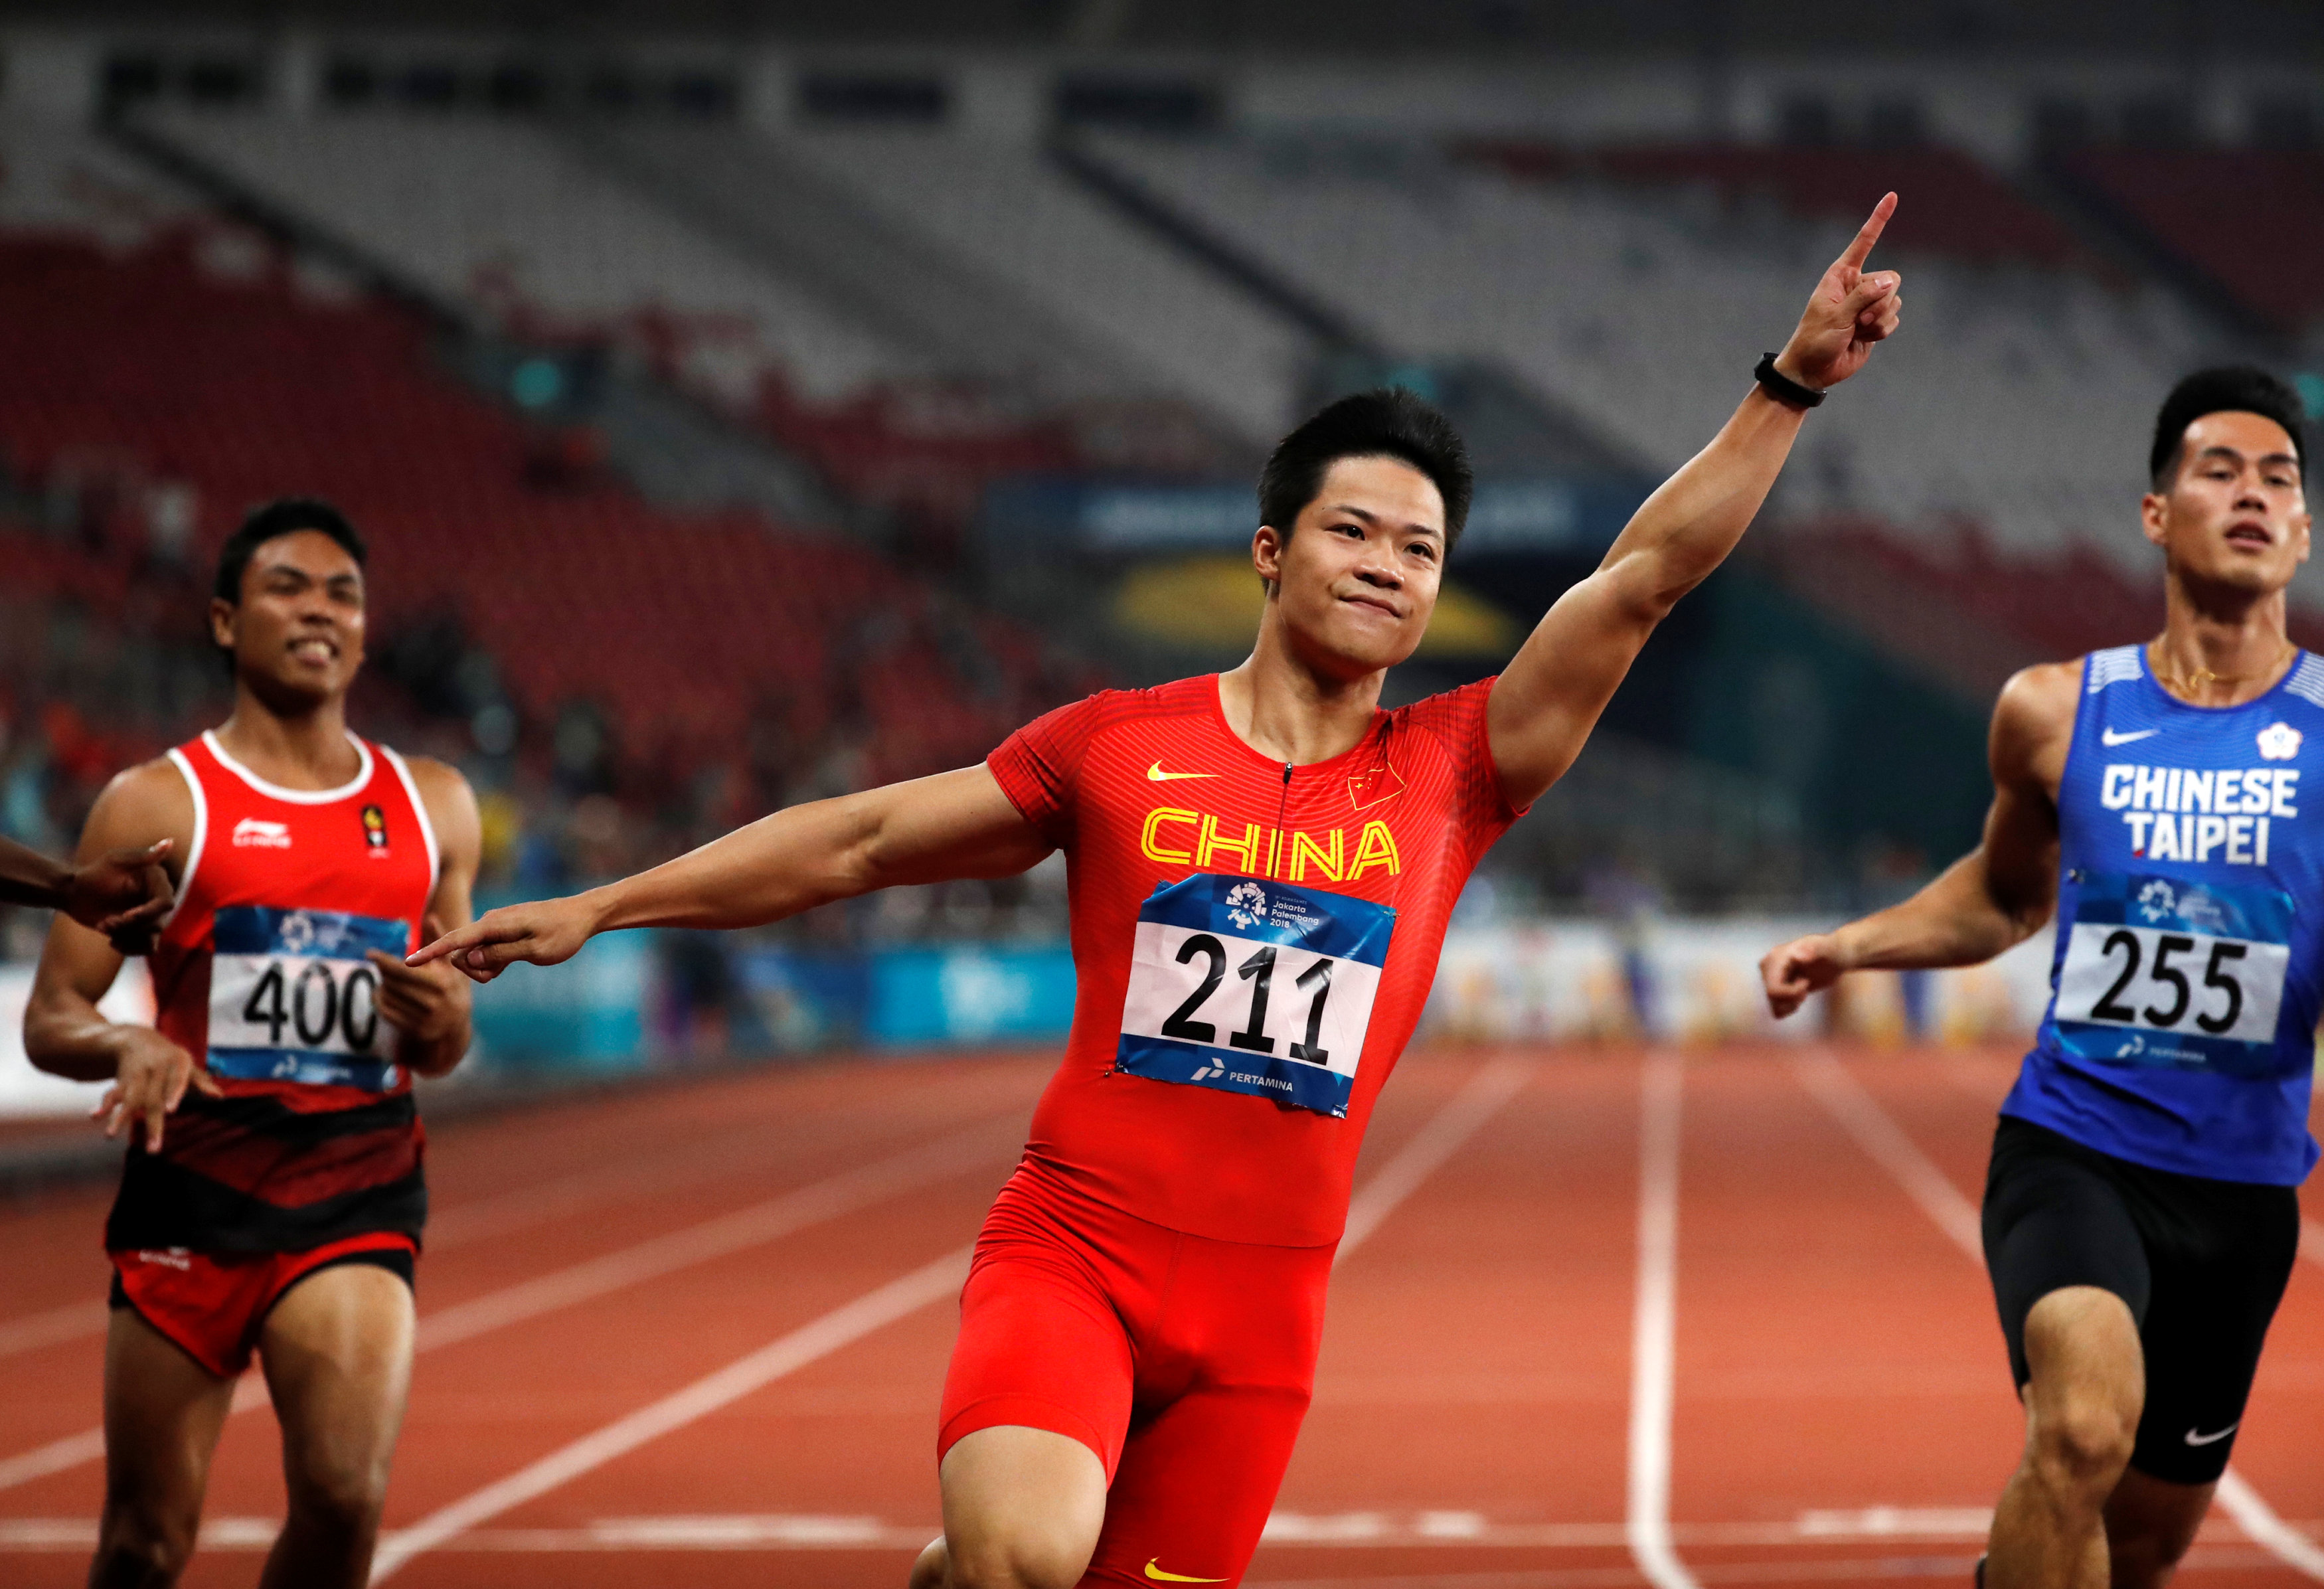 Athletics: China's Su becomes Asia's fastest man in Games record time